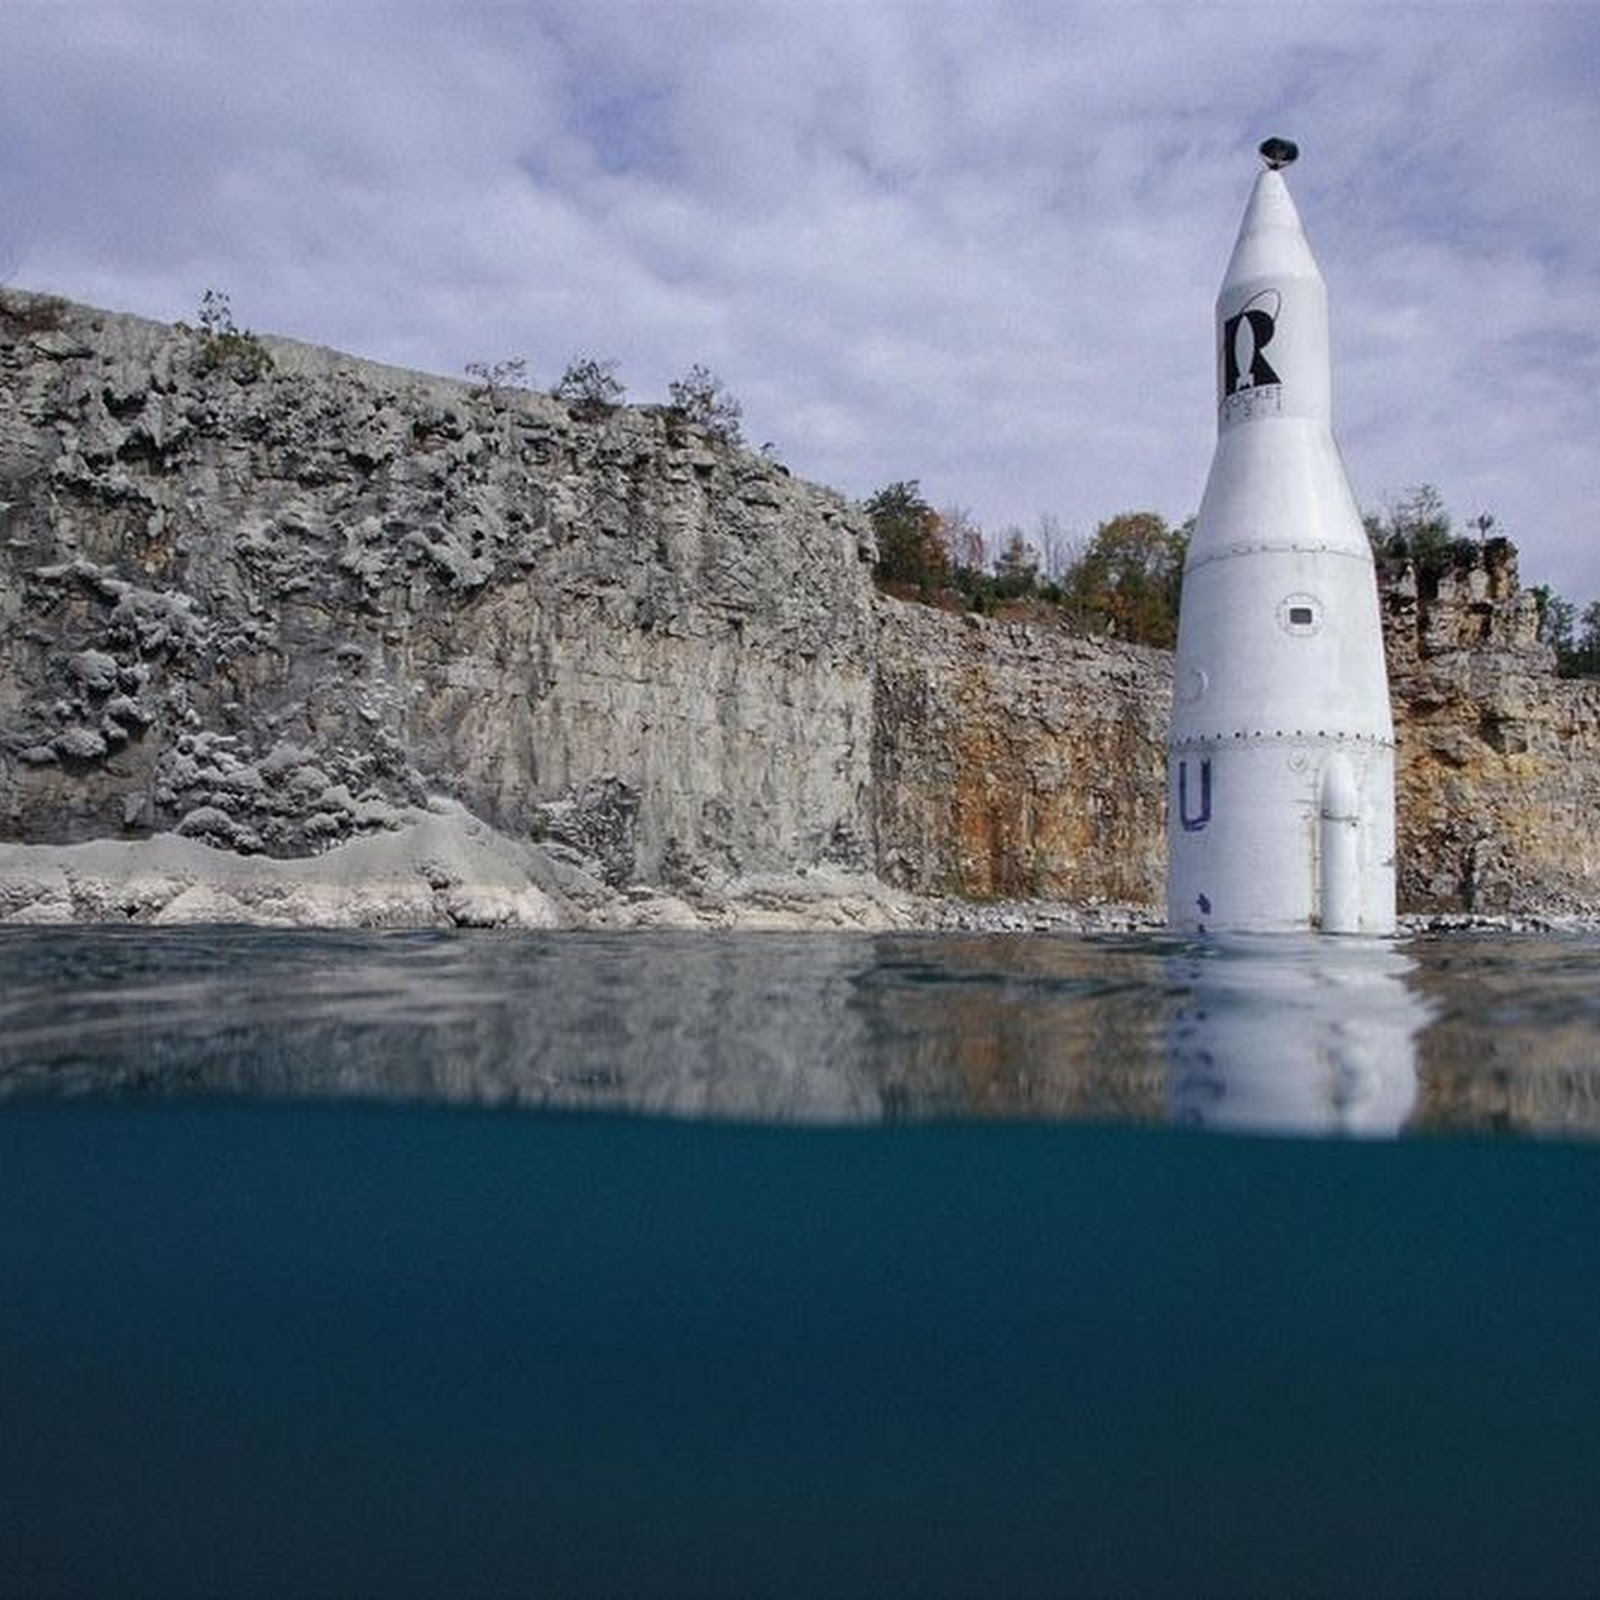 The Missile at Madison Quarry Lake